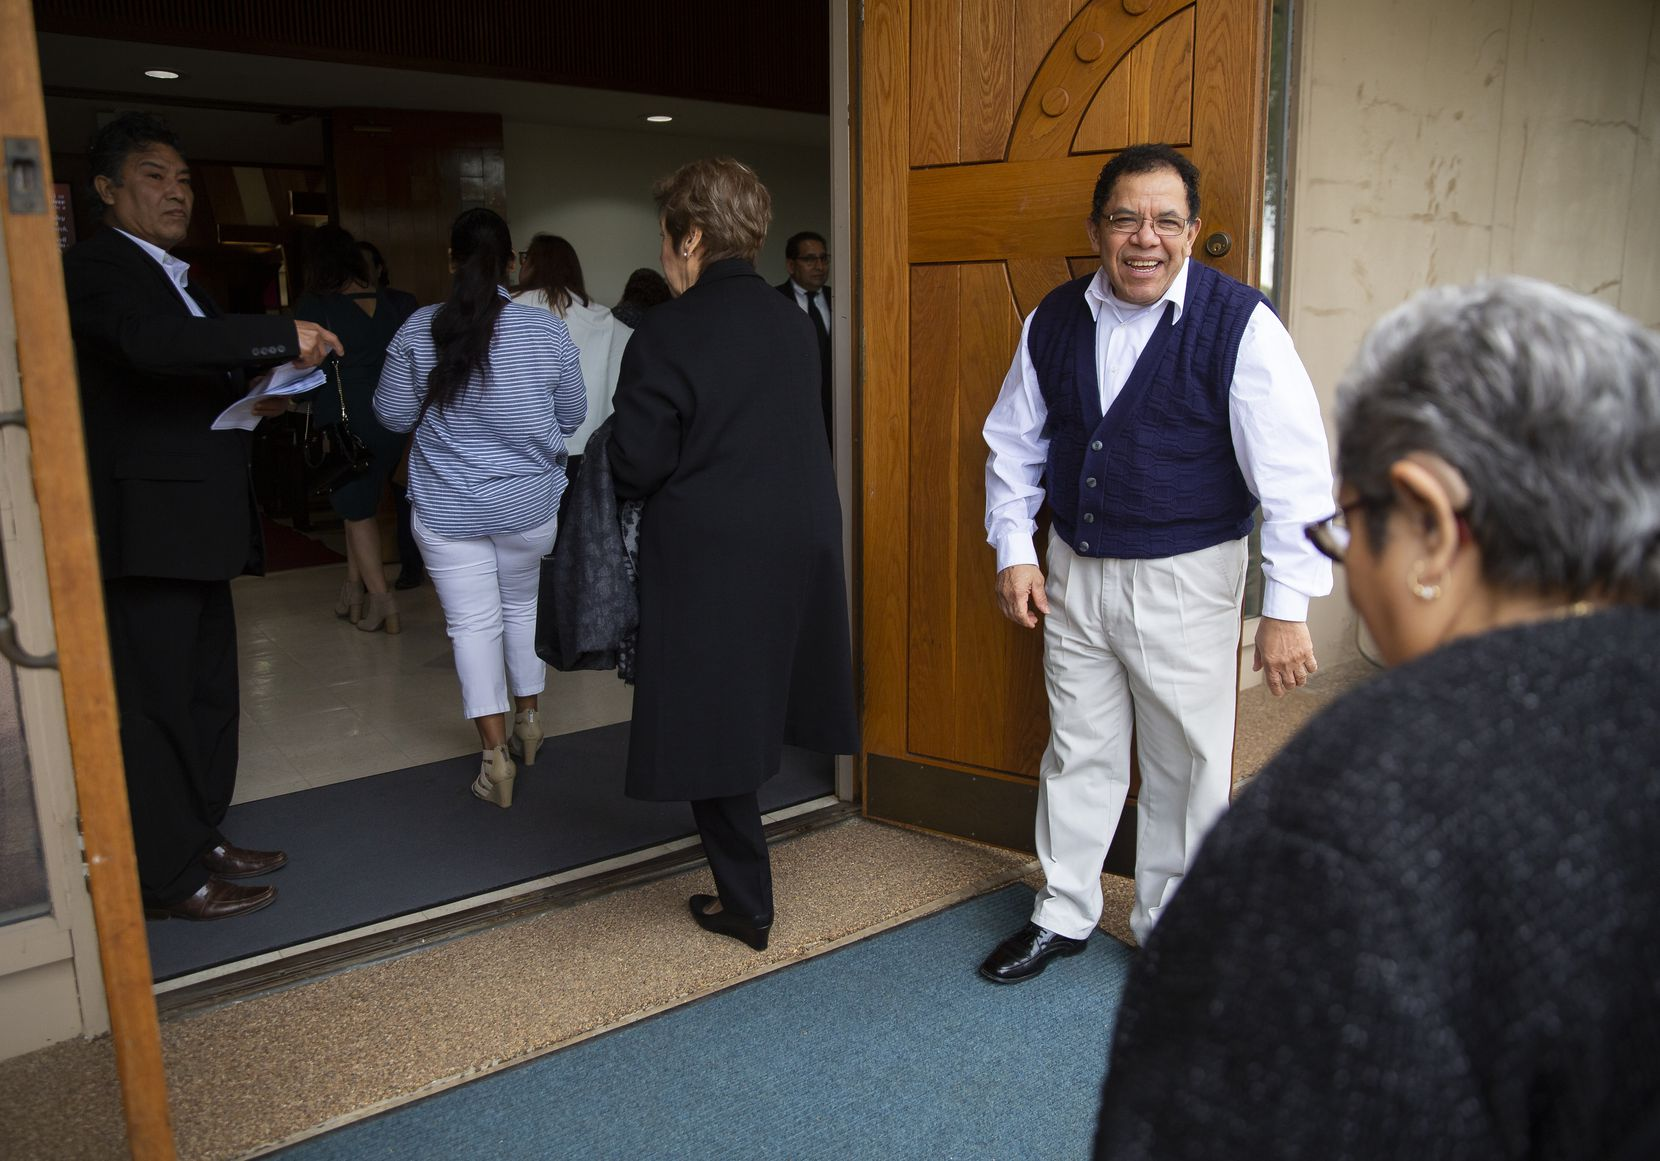 Juan Mejia (right) welcomed members of the First Mexican Baptist Church congregation into their new location Sunday morning.